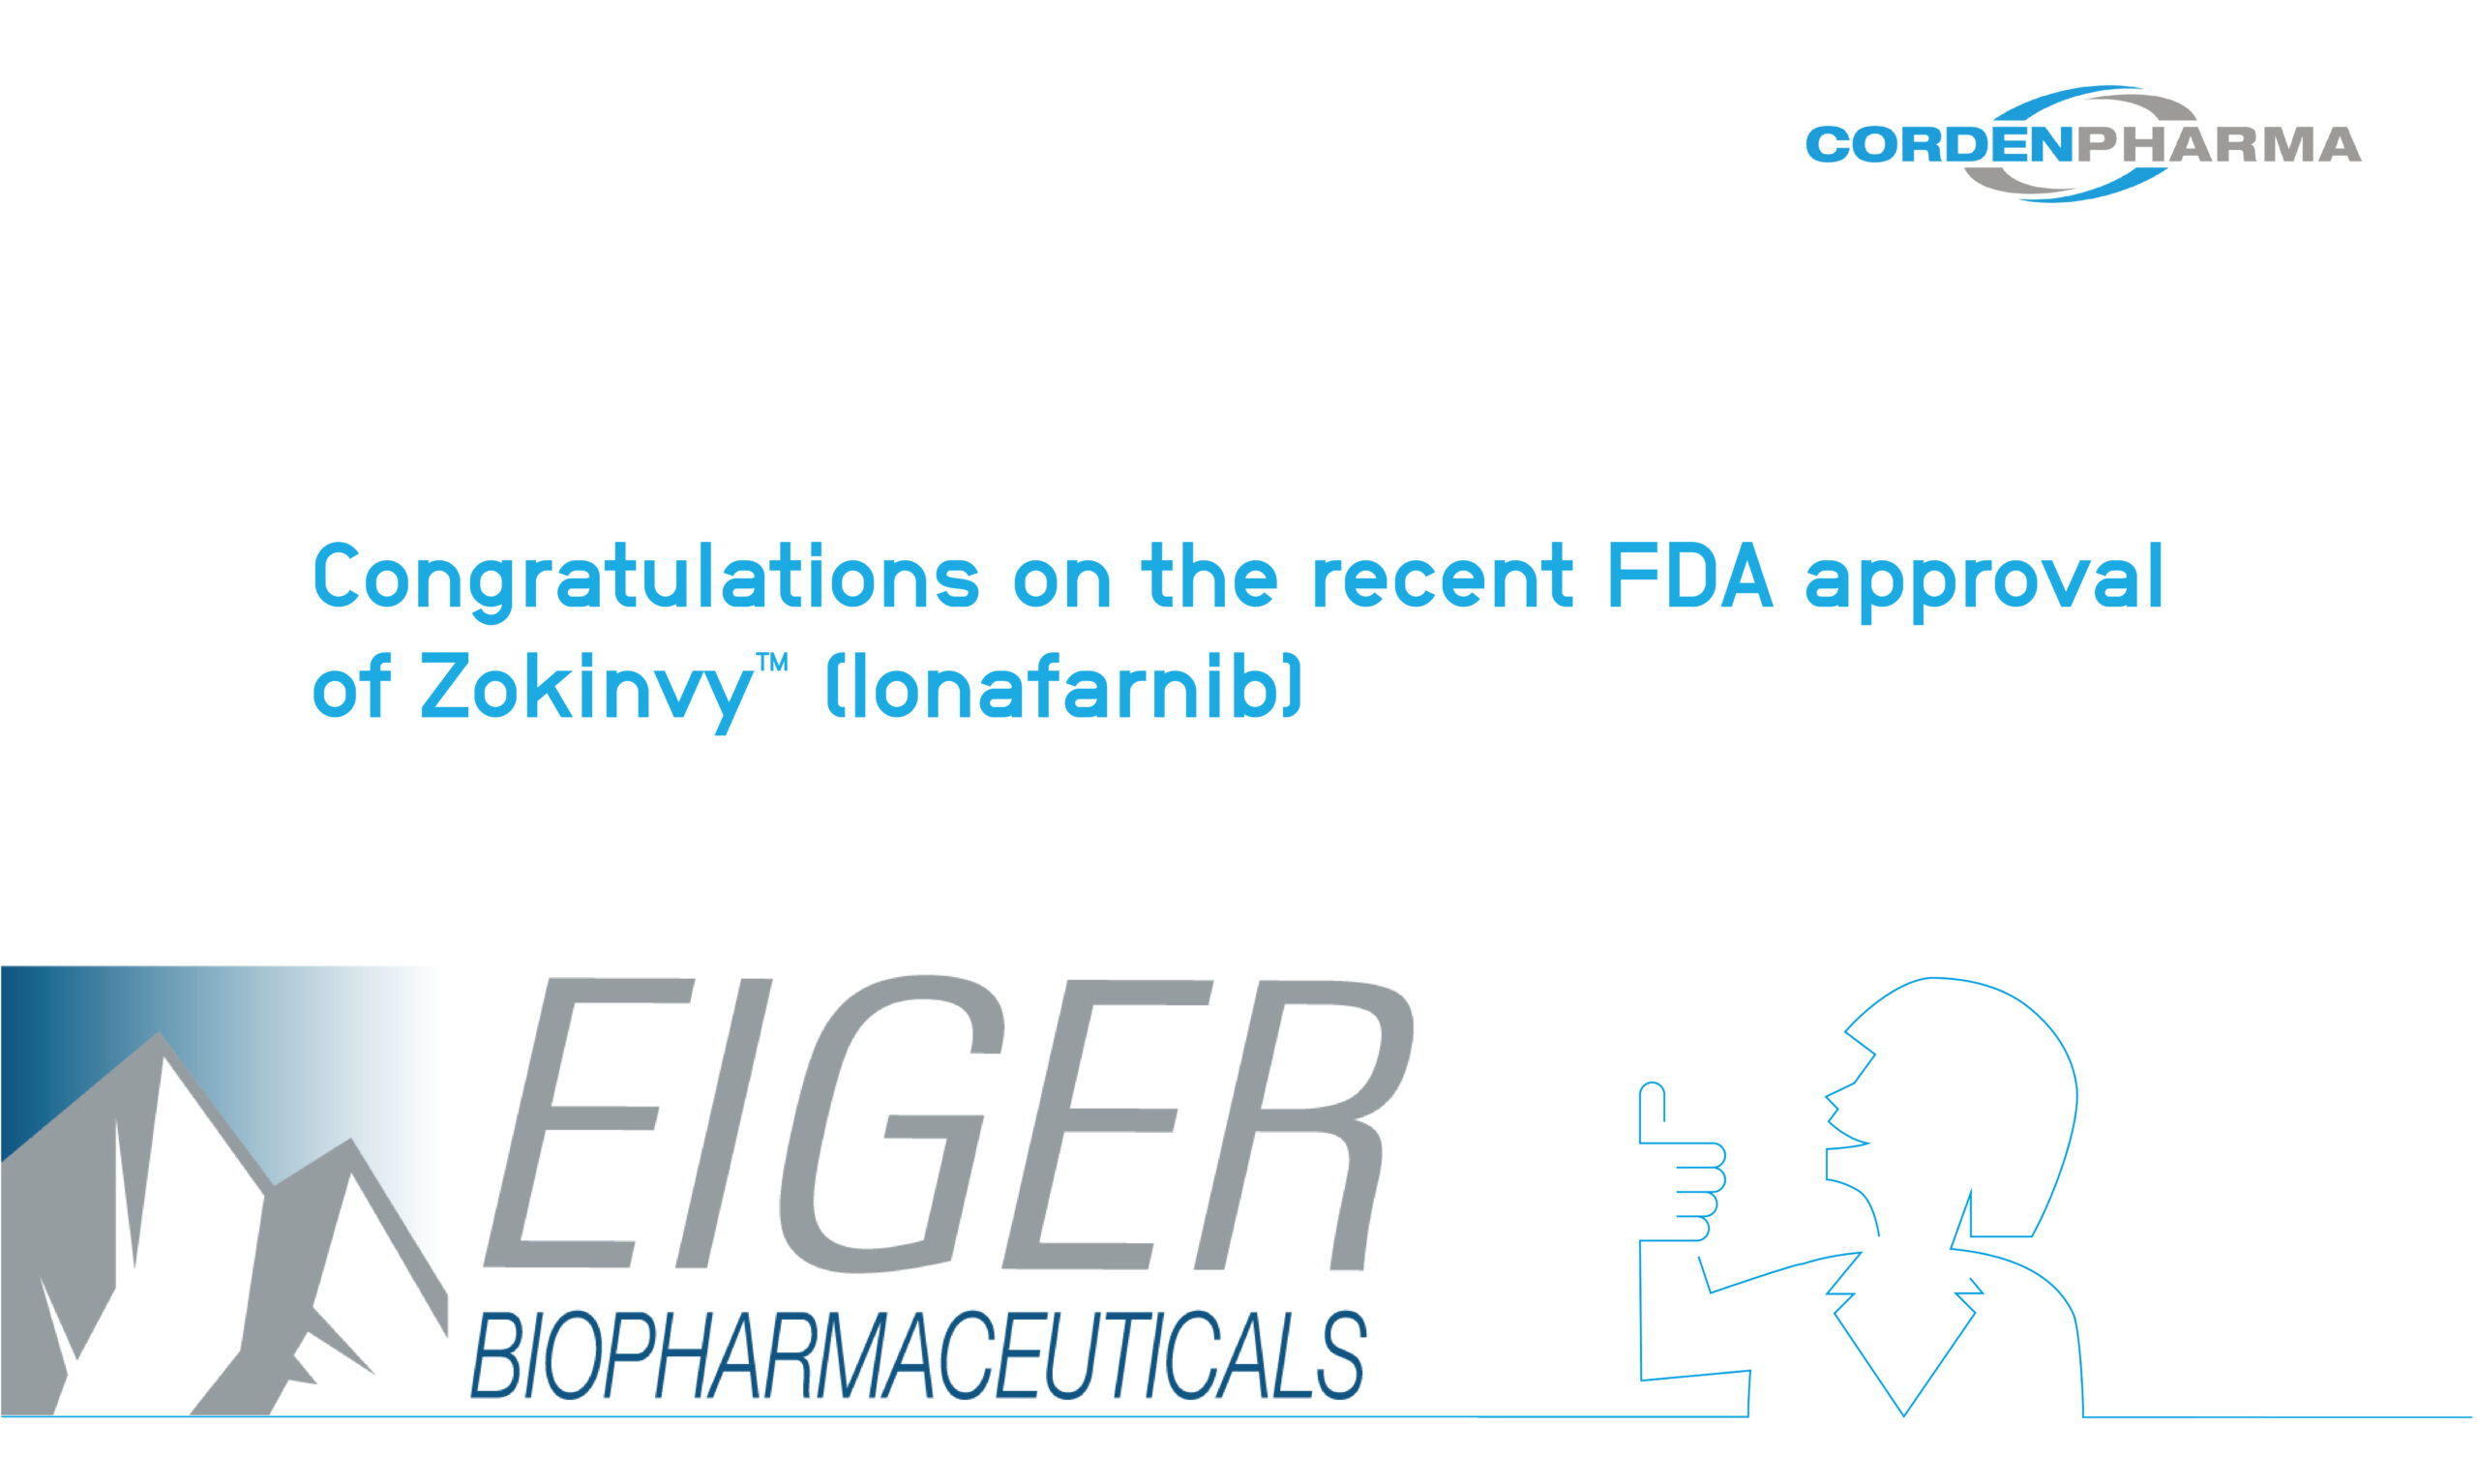 CordenPharma congratulates Eiger BioPharmaceuticals on their recent FDA Approval of Zokinvy